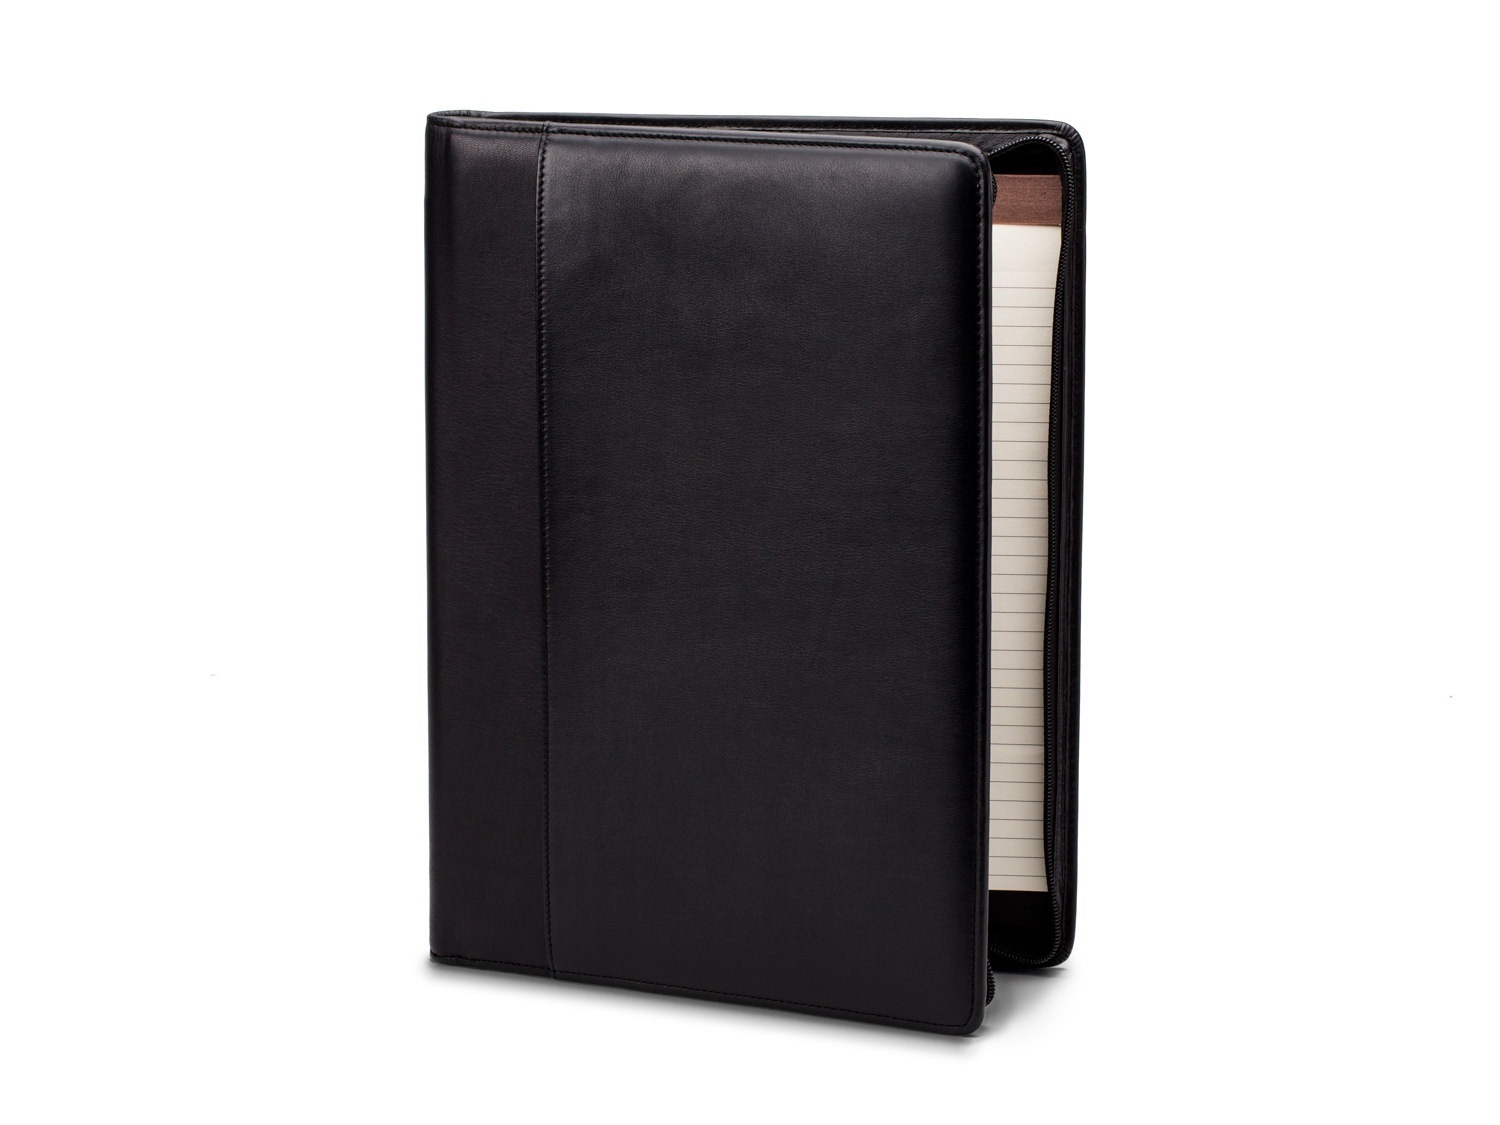 Deluxe Zip Around Portfolio Organizer - 100 Black